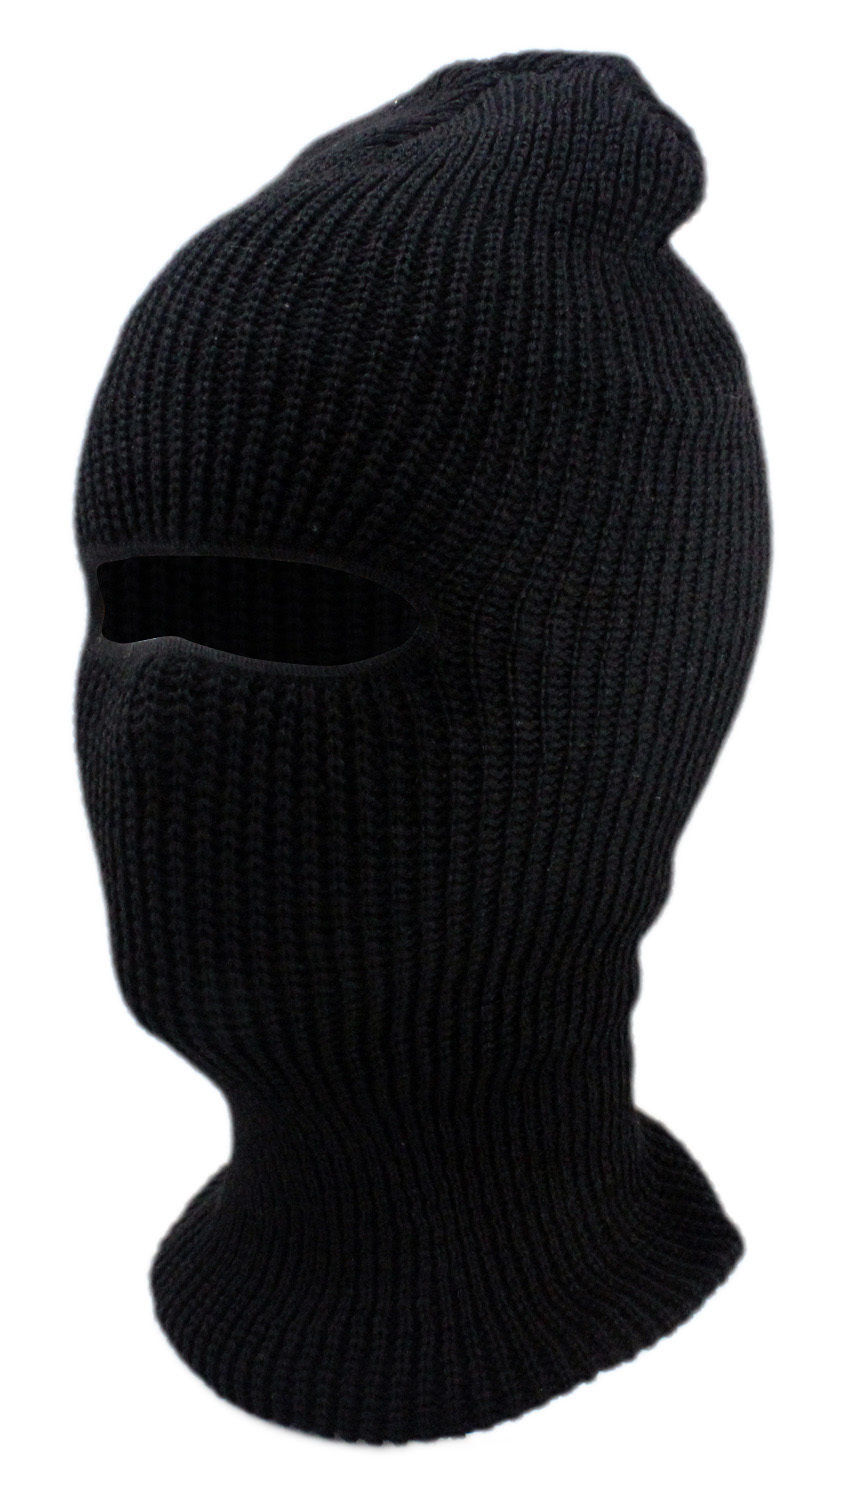 Men Women Ski Mask Beanie Cap Knit Face Mask Winter Hunting Ear Warm ...